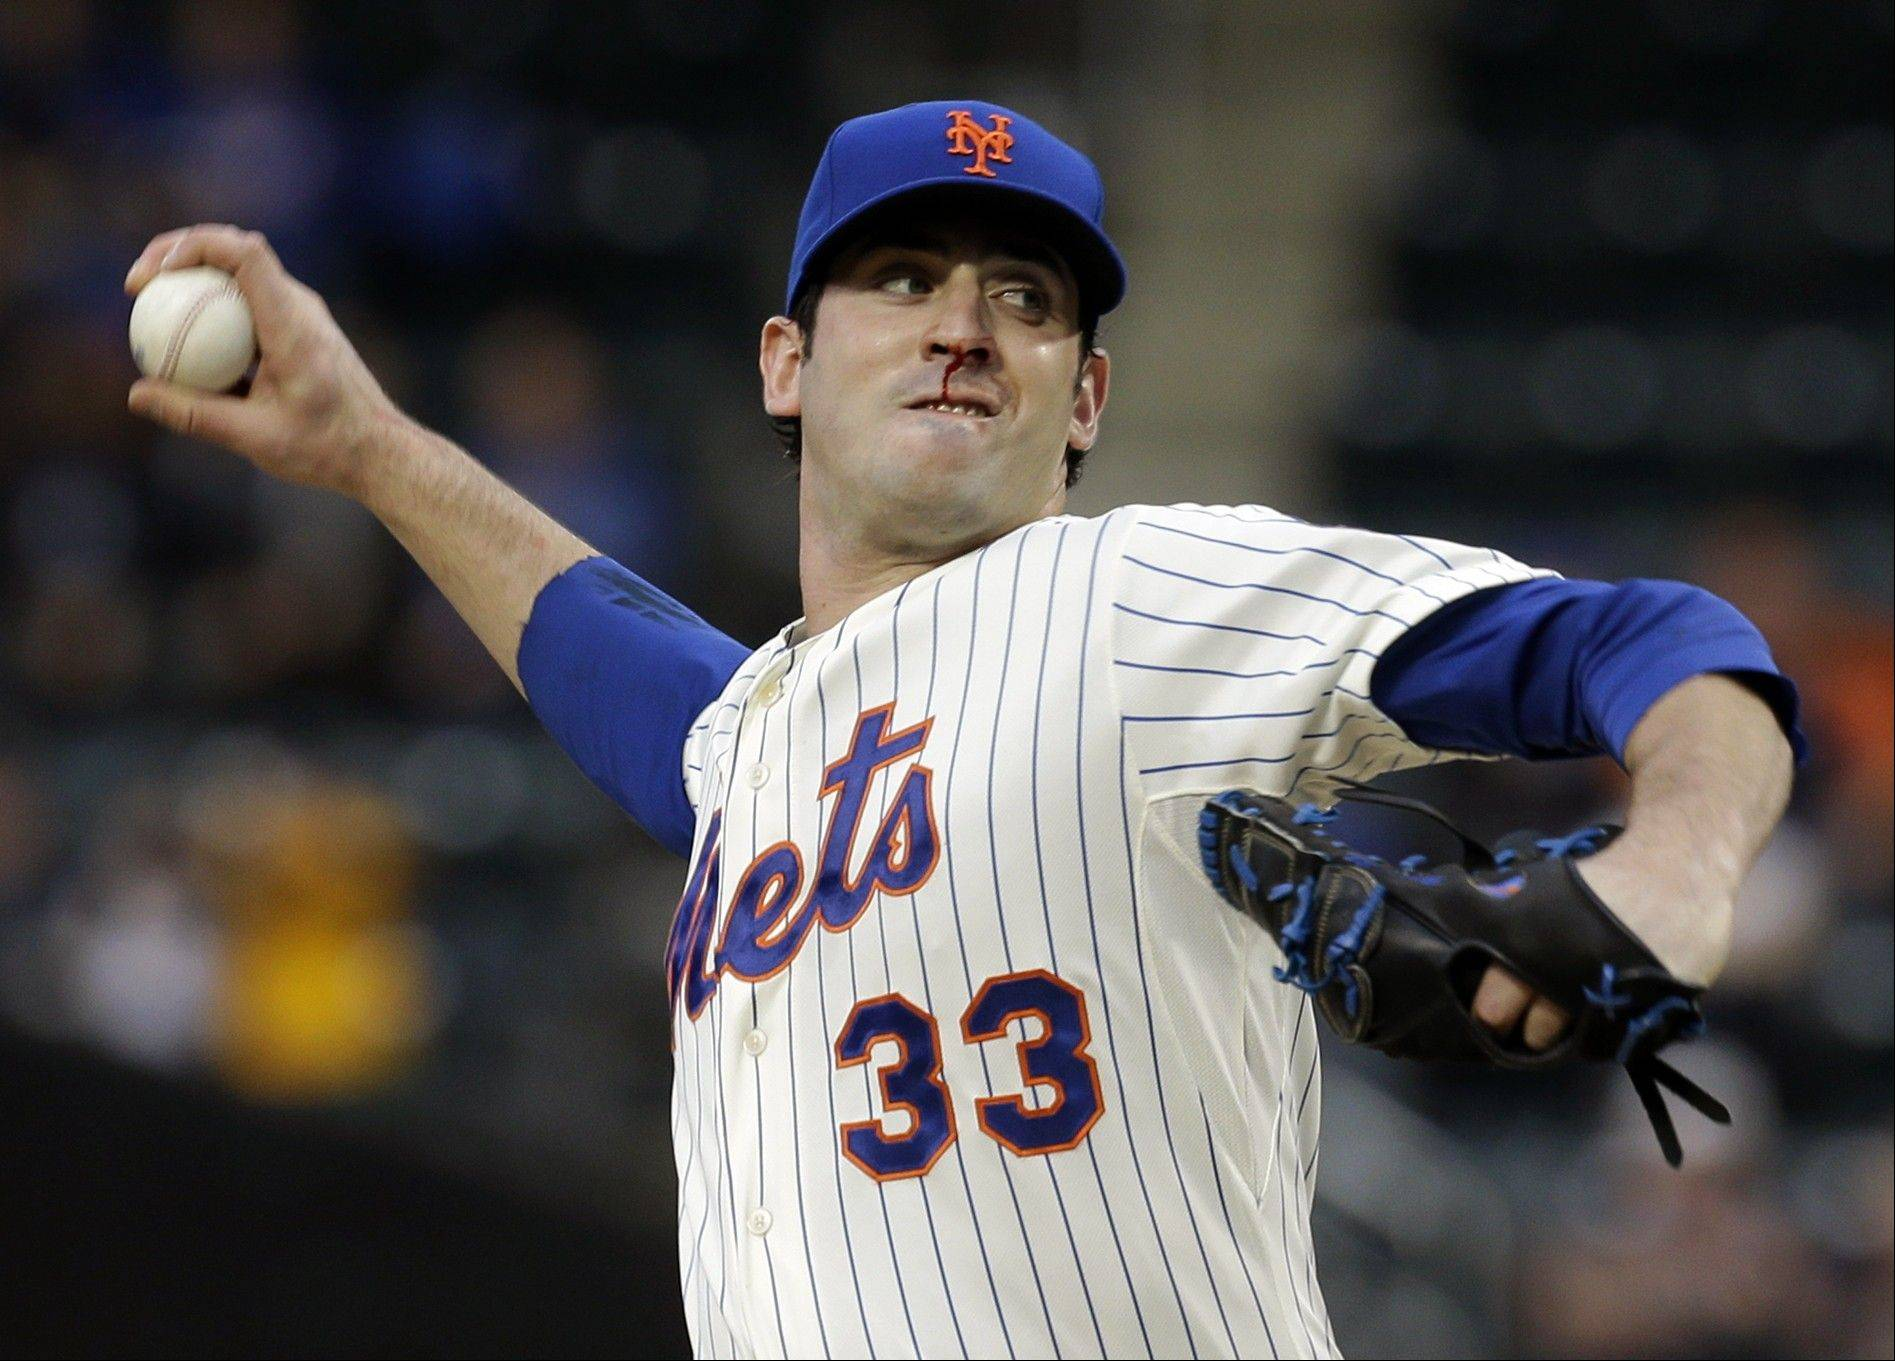 New York Mets starting pitcher Matt Harvey throws during the first inning of the baseball game against the Chicago White Sox at Citi Field on Tuesday, May 7, 2013 in New York.